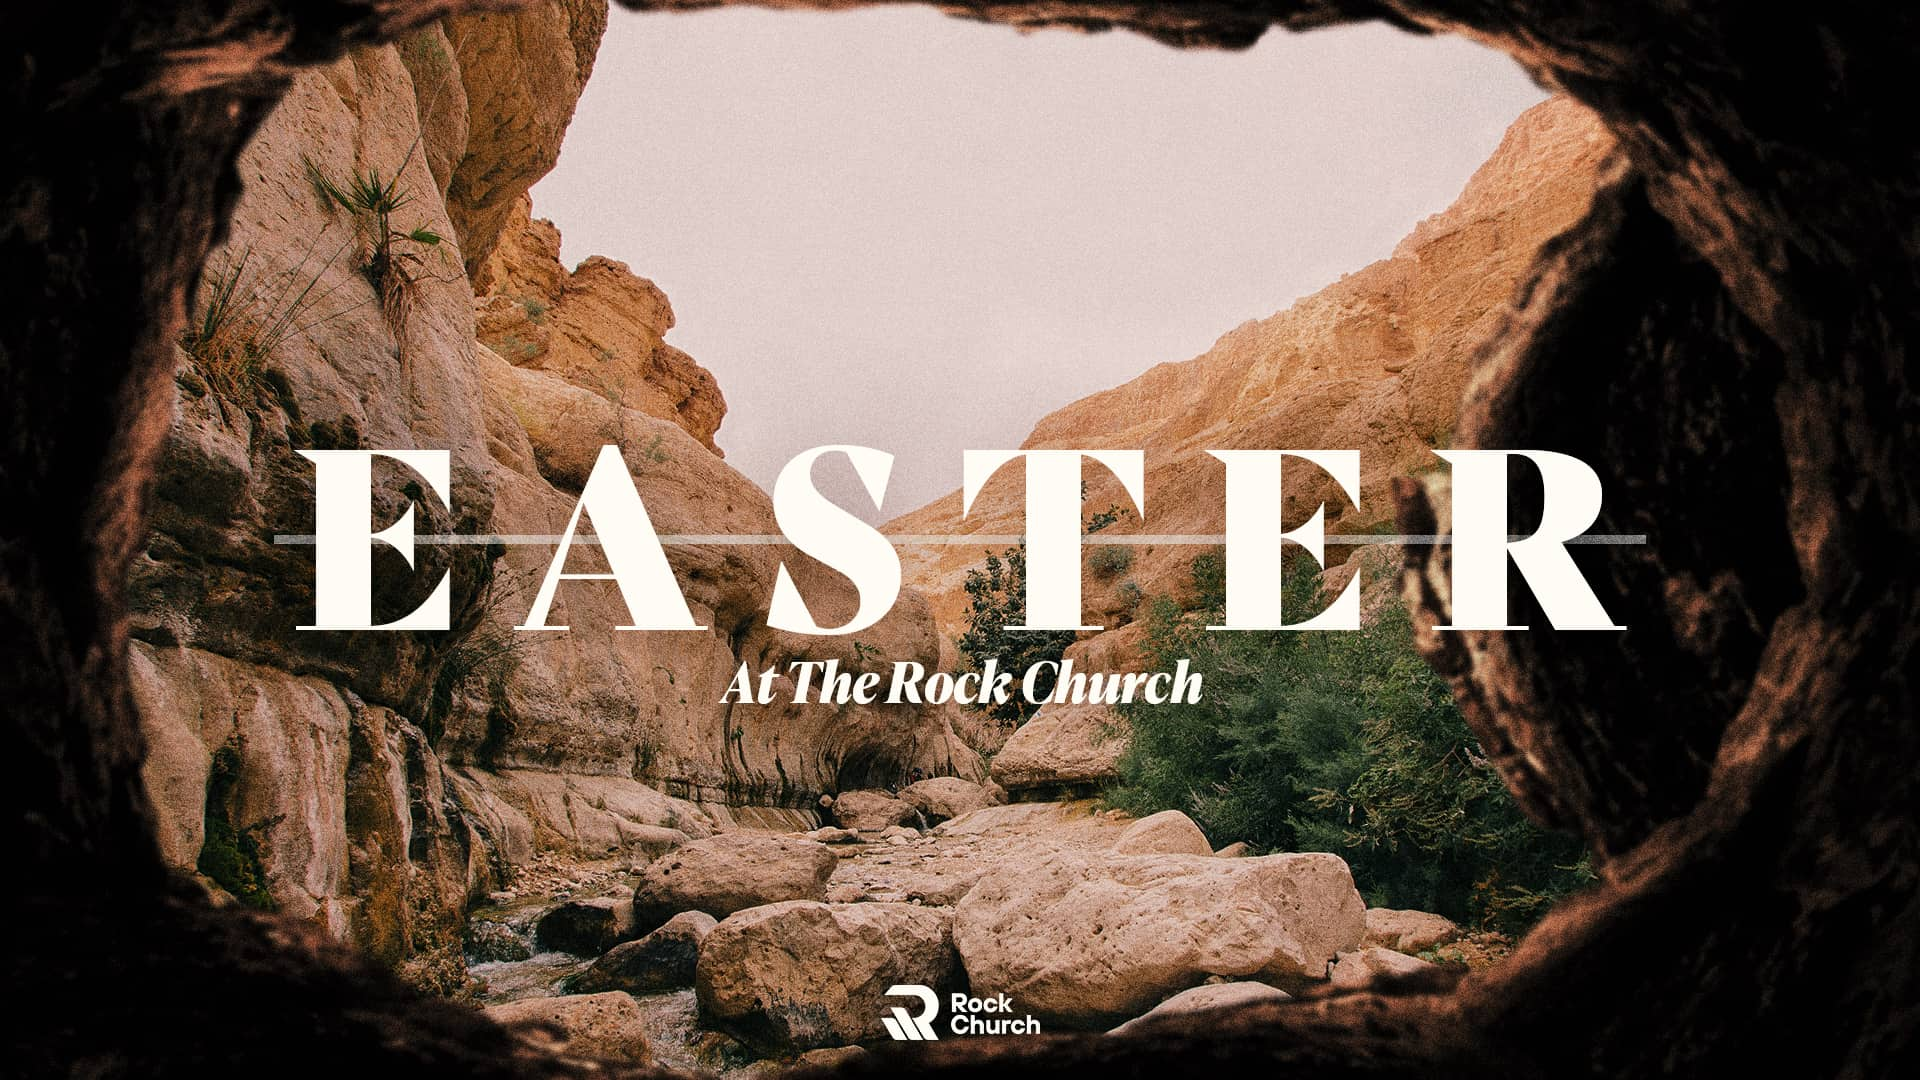 Easter At The Rock Church